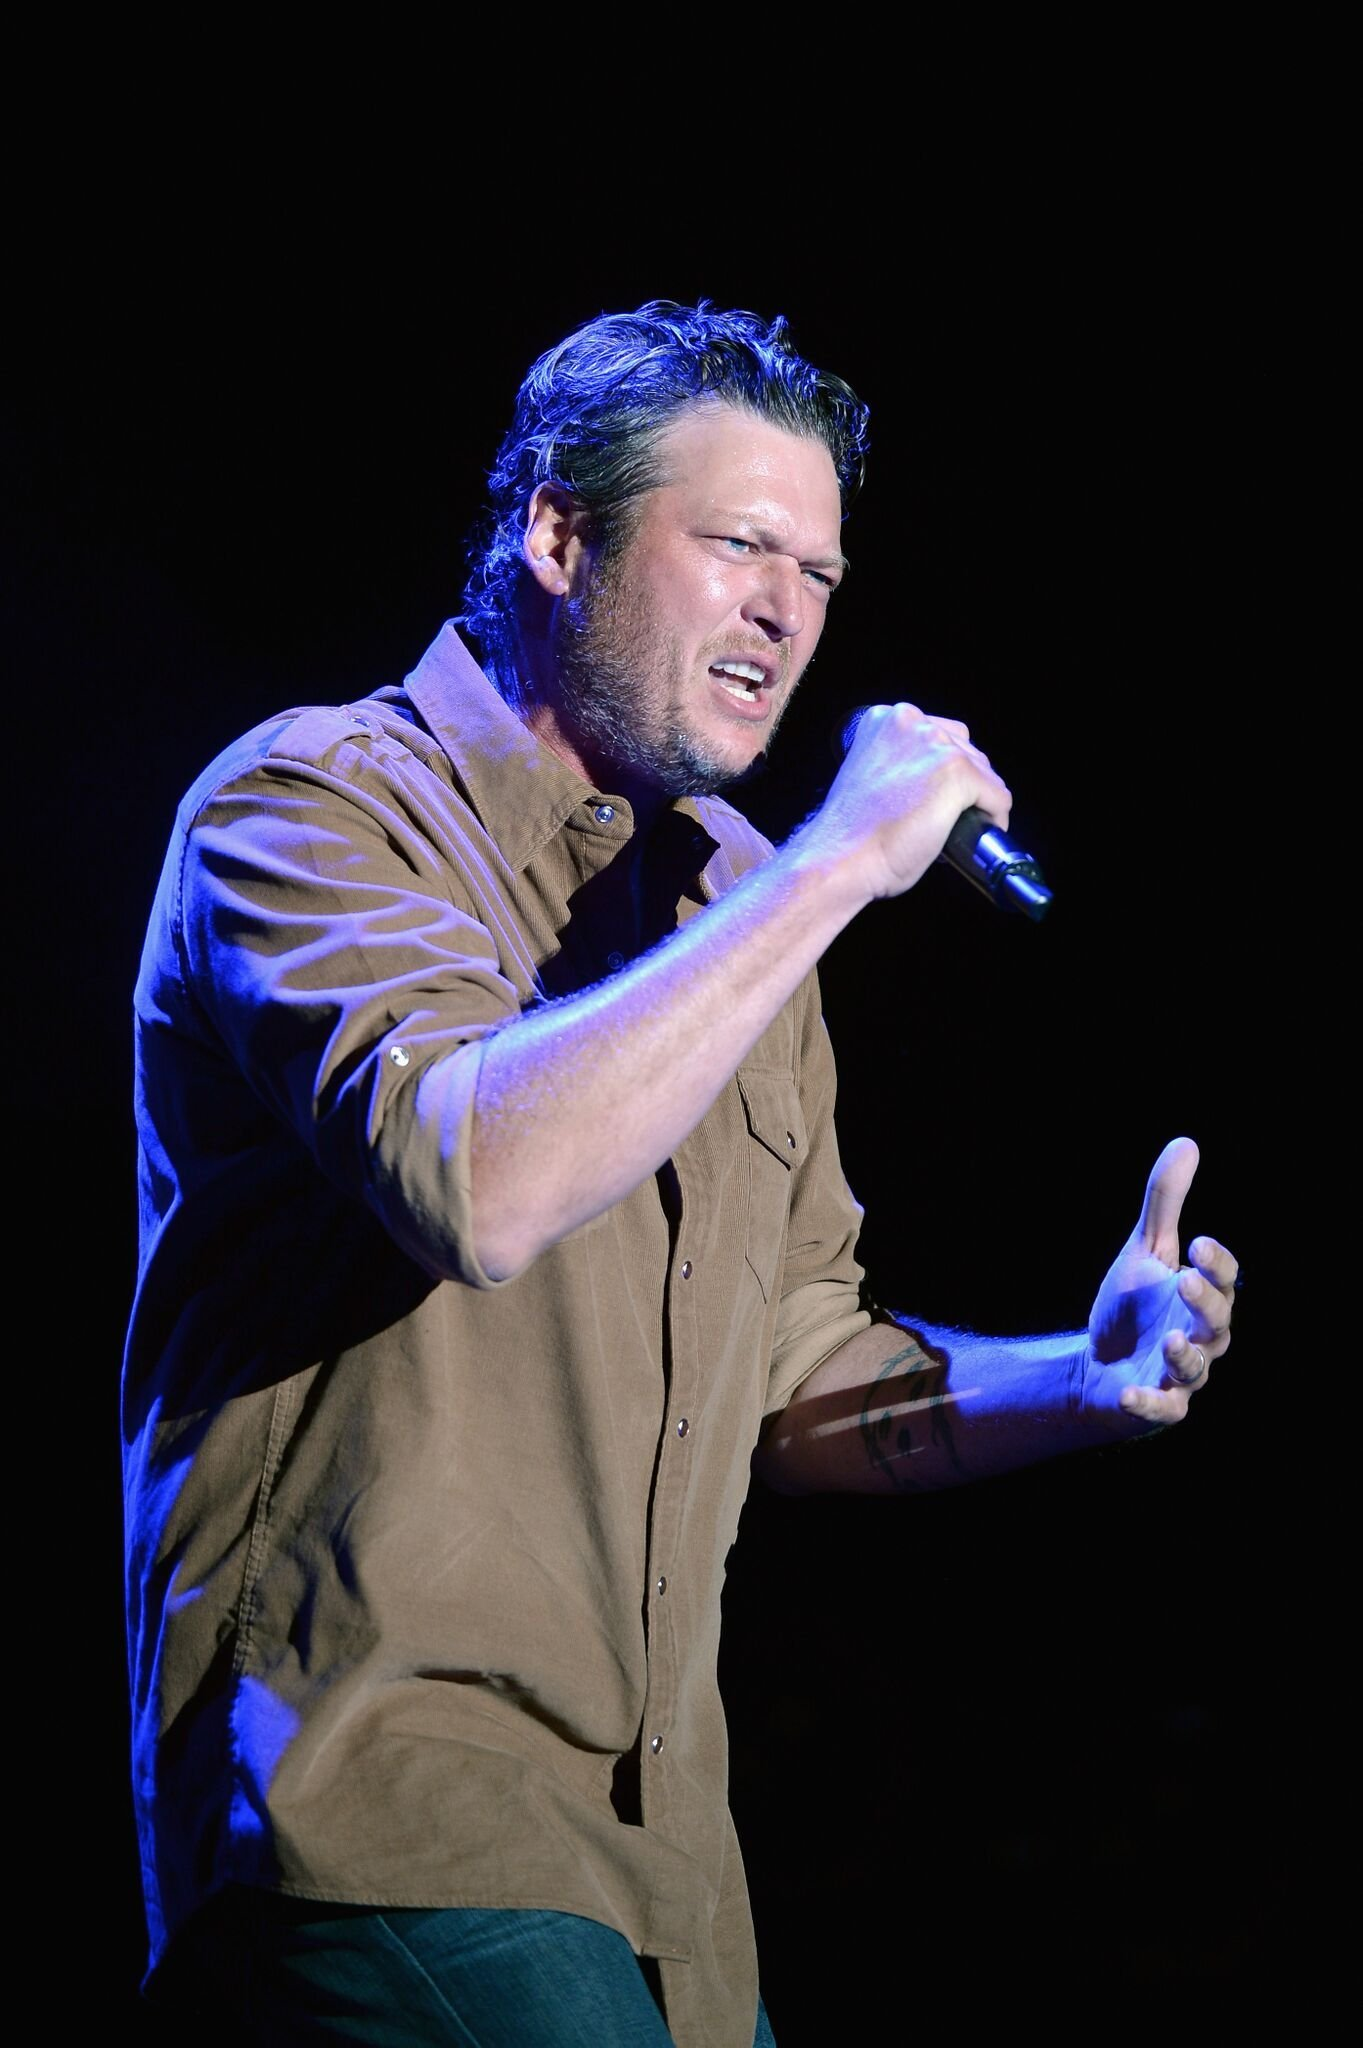 Blake Shelton performs onstage during day 1 of the Big Barrel Country Music Festival | Getty Images